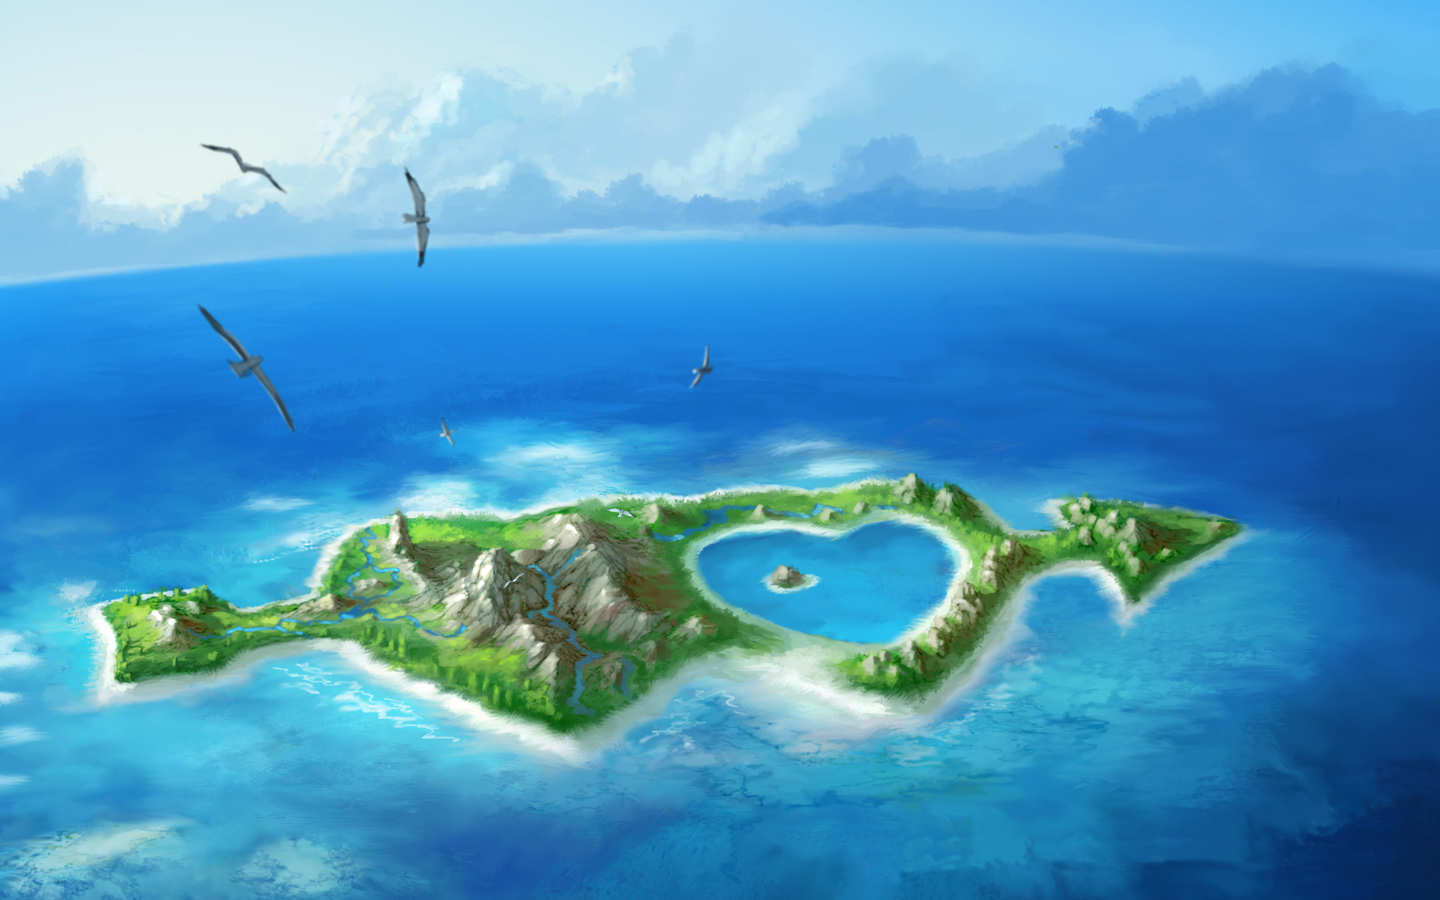 wallpaper island wallpaper desktop wallpaper 1440x900